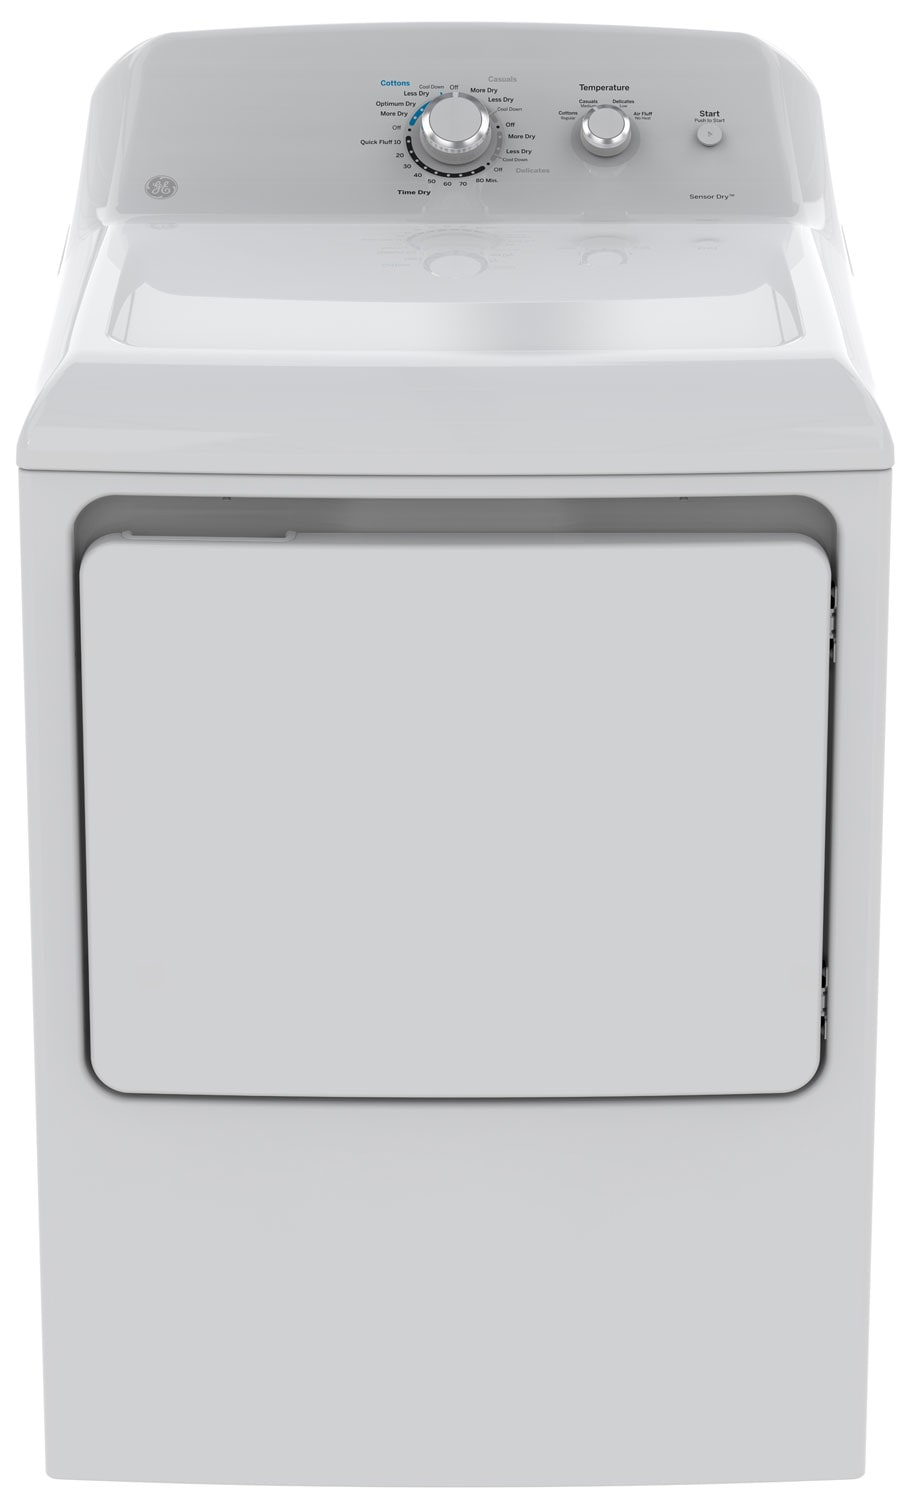 Washers and Dryers - GE 7.2 Cu. Ft. Electric Dryer – GTD40EBMKWW